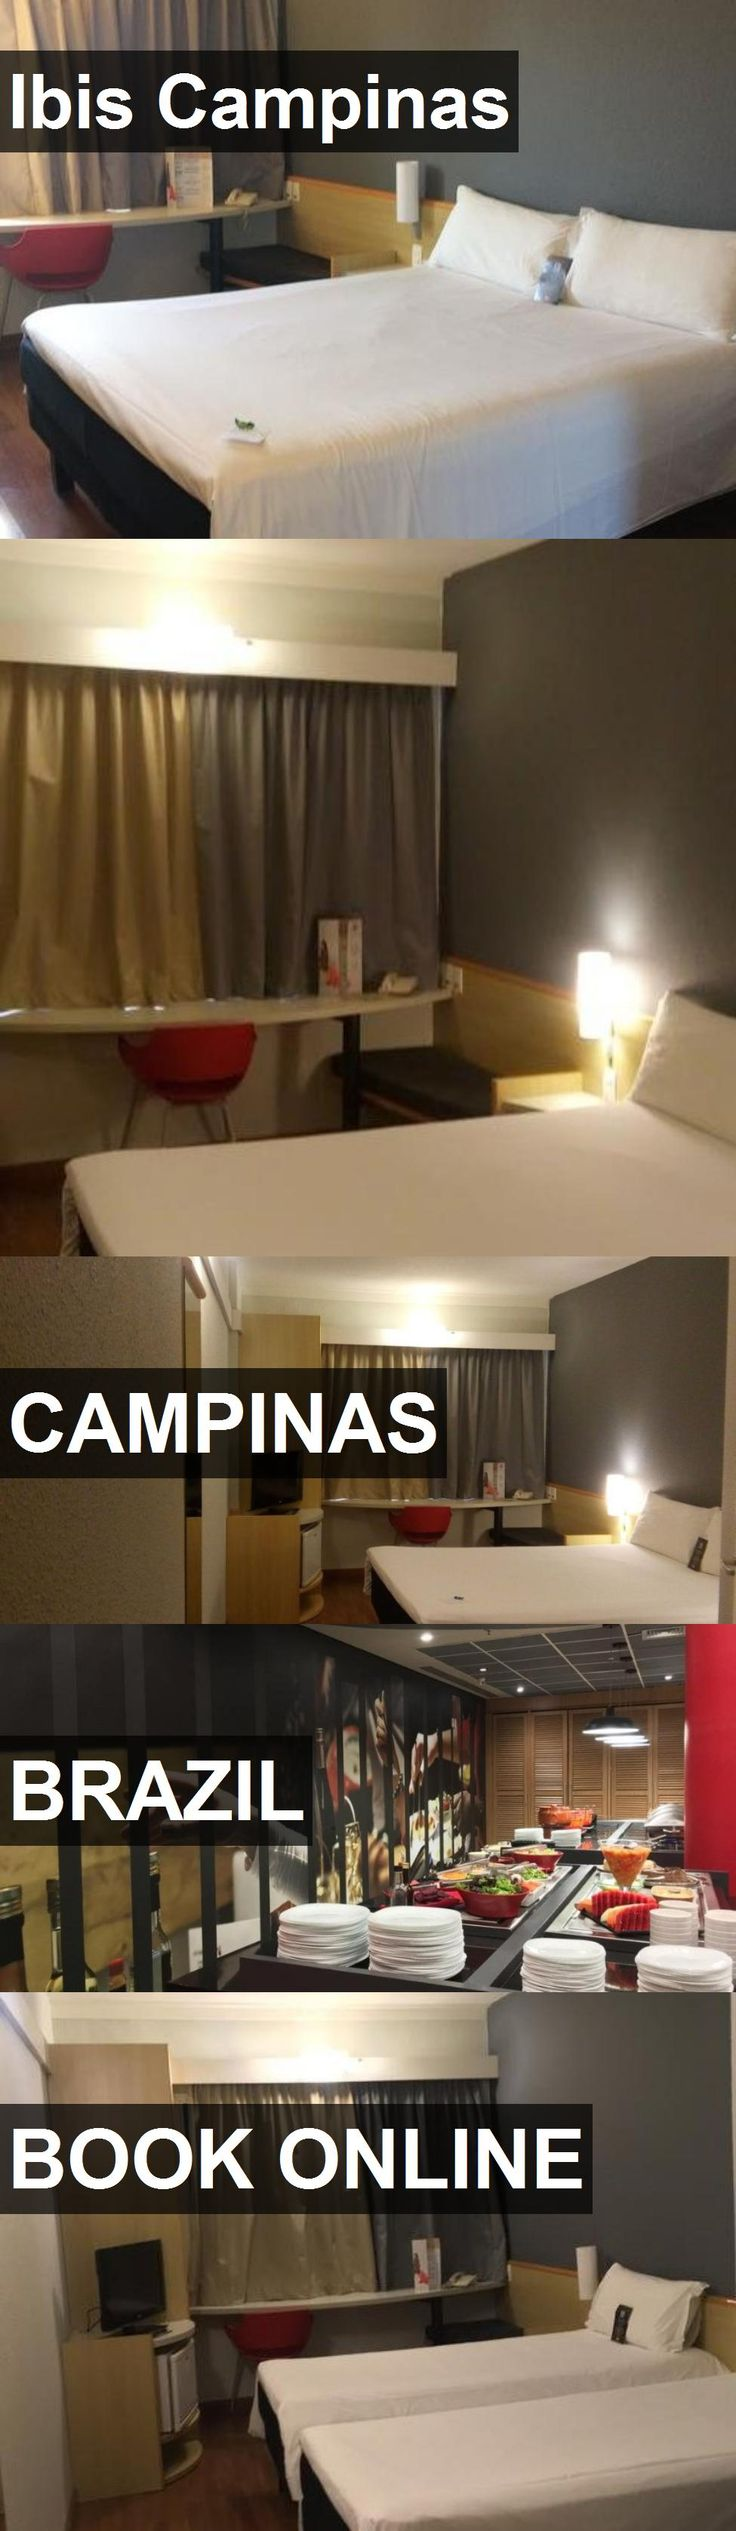 Hotel Ibis Campinas in Campinas, Brazil. For more information, photos, reviews and best prices please follow the link. #Brazil #Campinas #IbisCampinas #hotel #travel #vacation